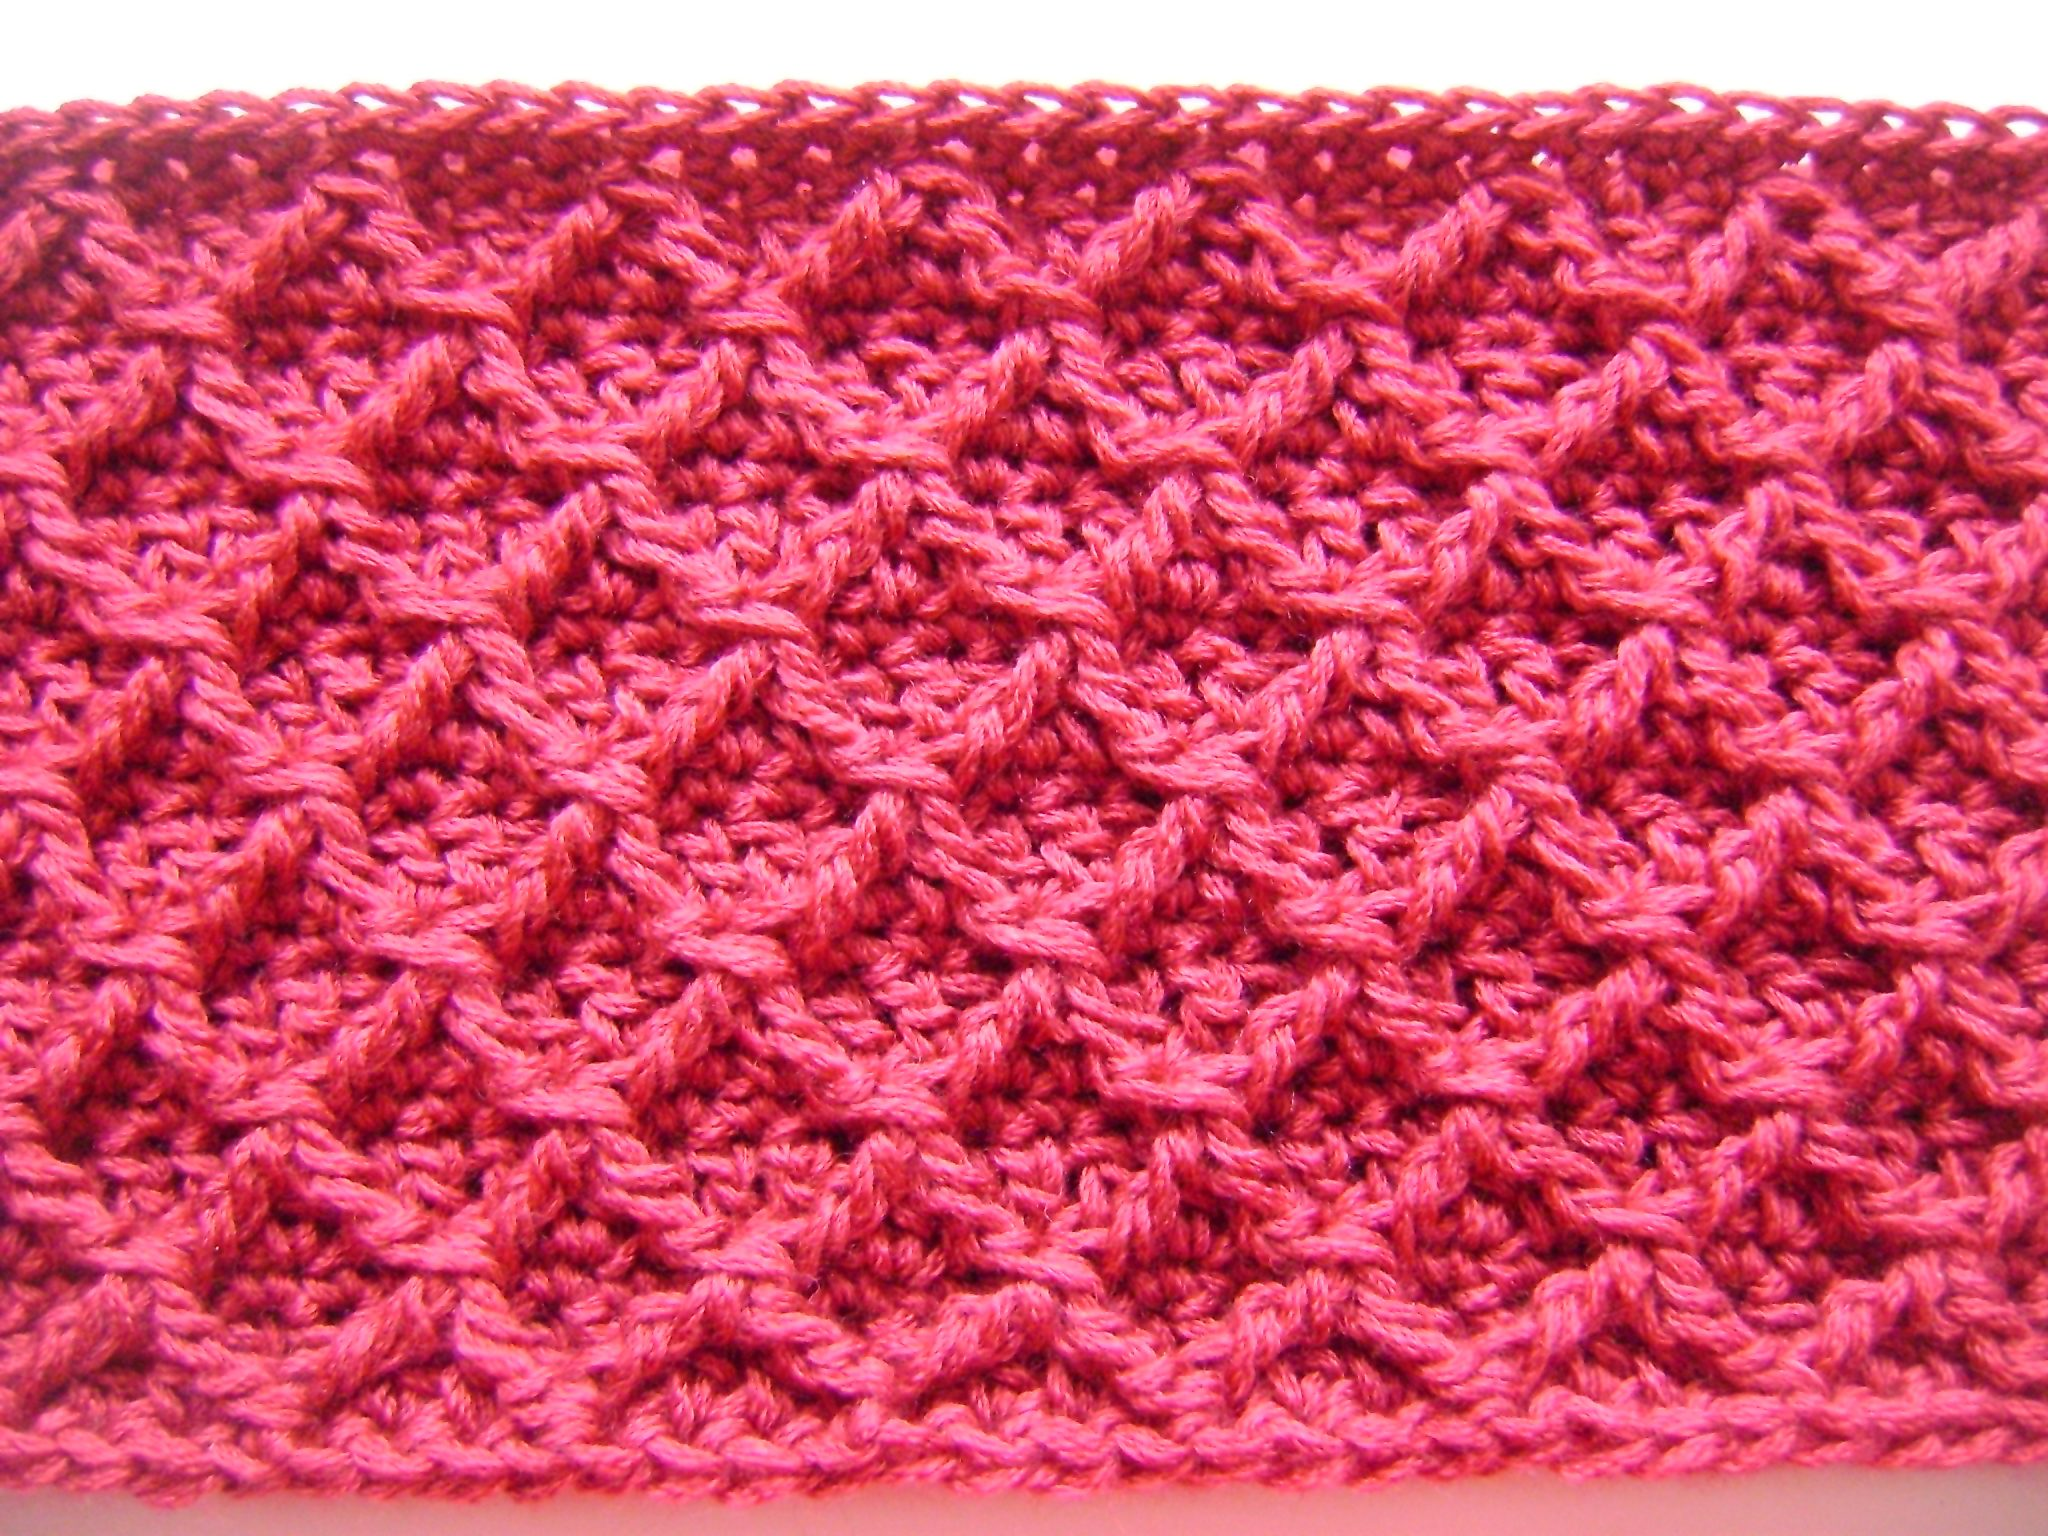 Crochet Patterns How To : closeup of the stitch pattern, so you can get an idea of how it ...